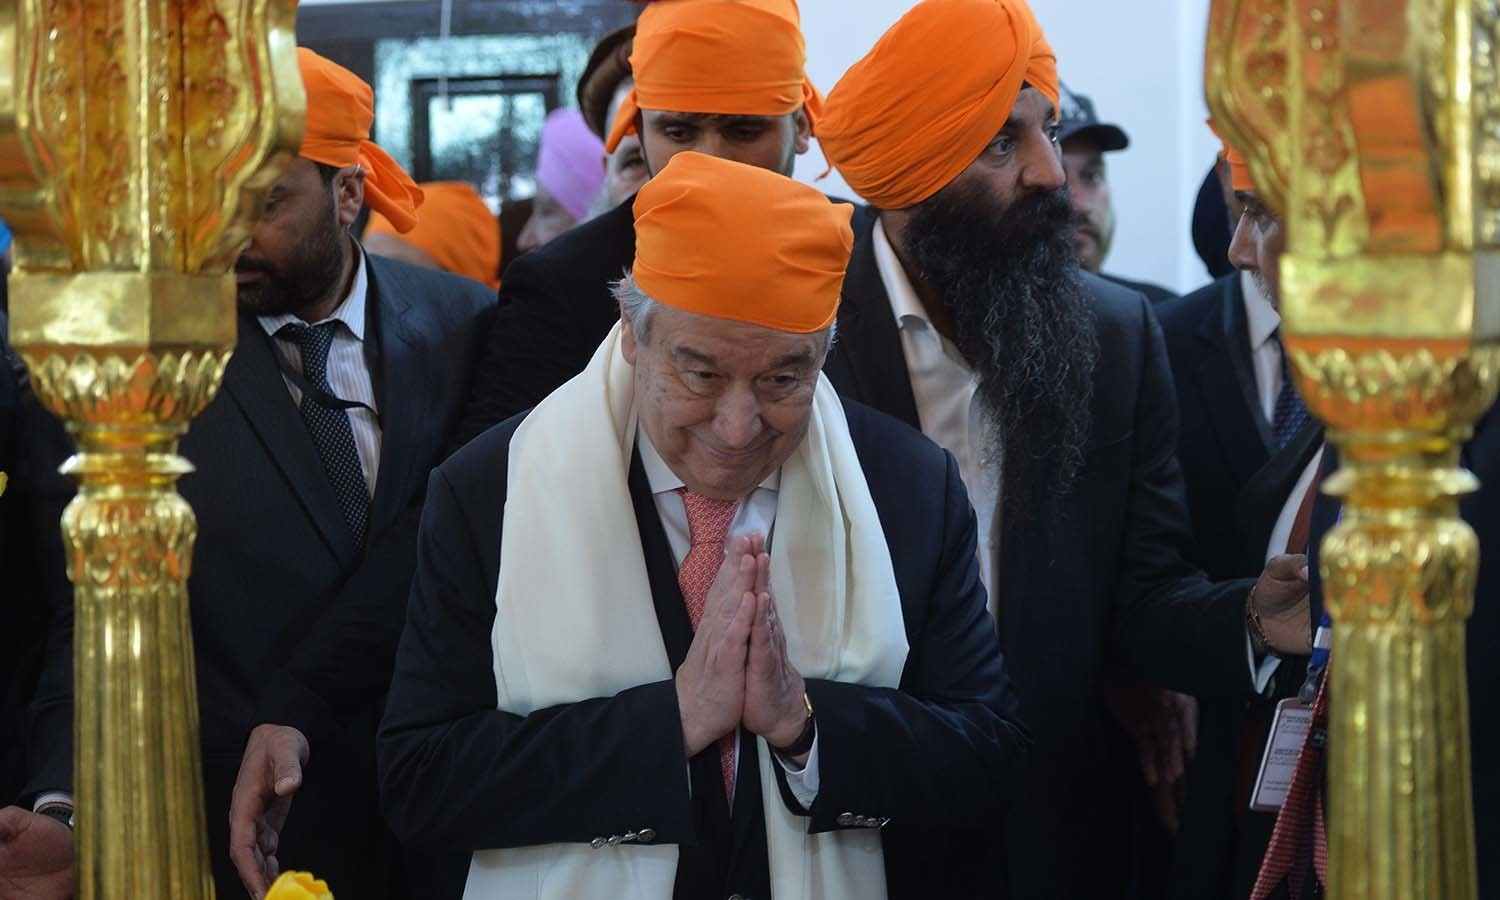 Guterres pays his respects during a visit to the Sikh Shrine of Baba Guru Nanak Dev. — AFP